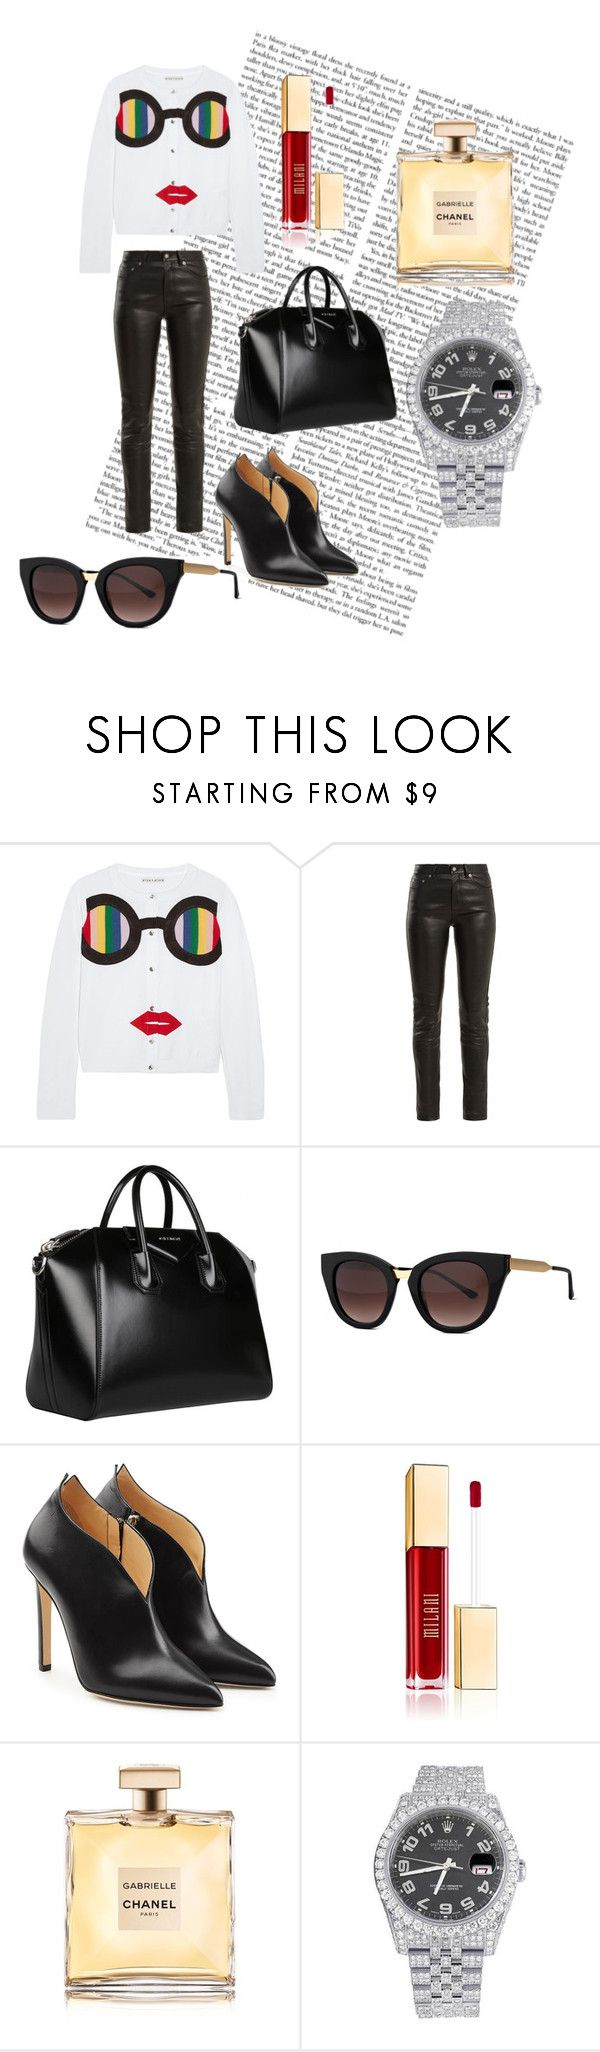 """""""#PolyPresents: Wish List"""" by christine-at ❤ liked on Polyvore featuring Alice + Olivia, Yves Saint Laurent, Givenchy, Thierry Lasry, Chloe Gosselin, Rolex, contestentry and polyPresents"""